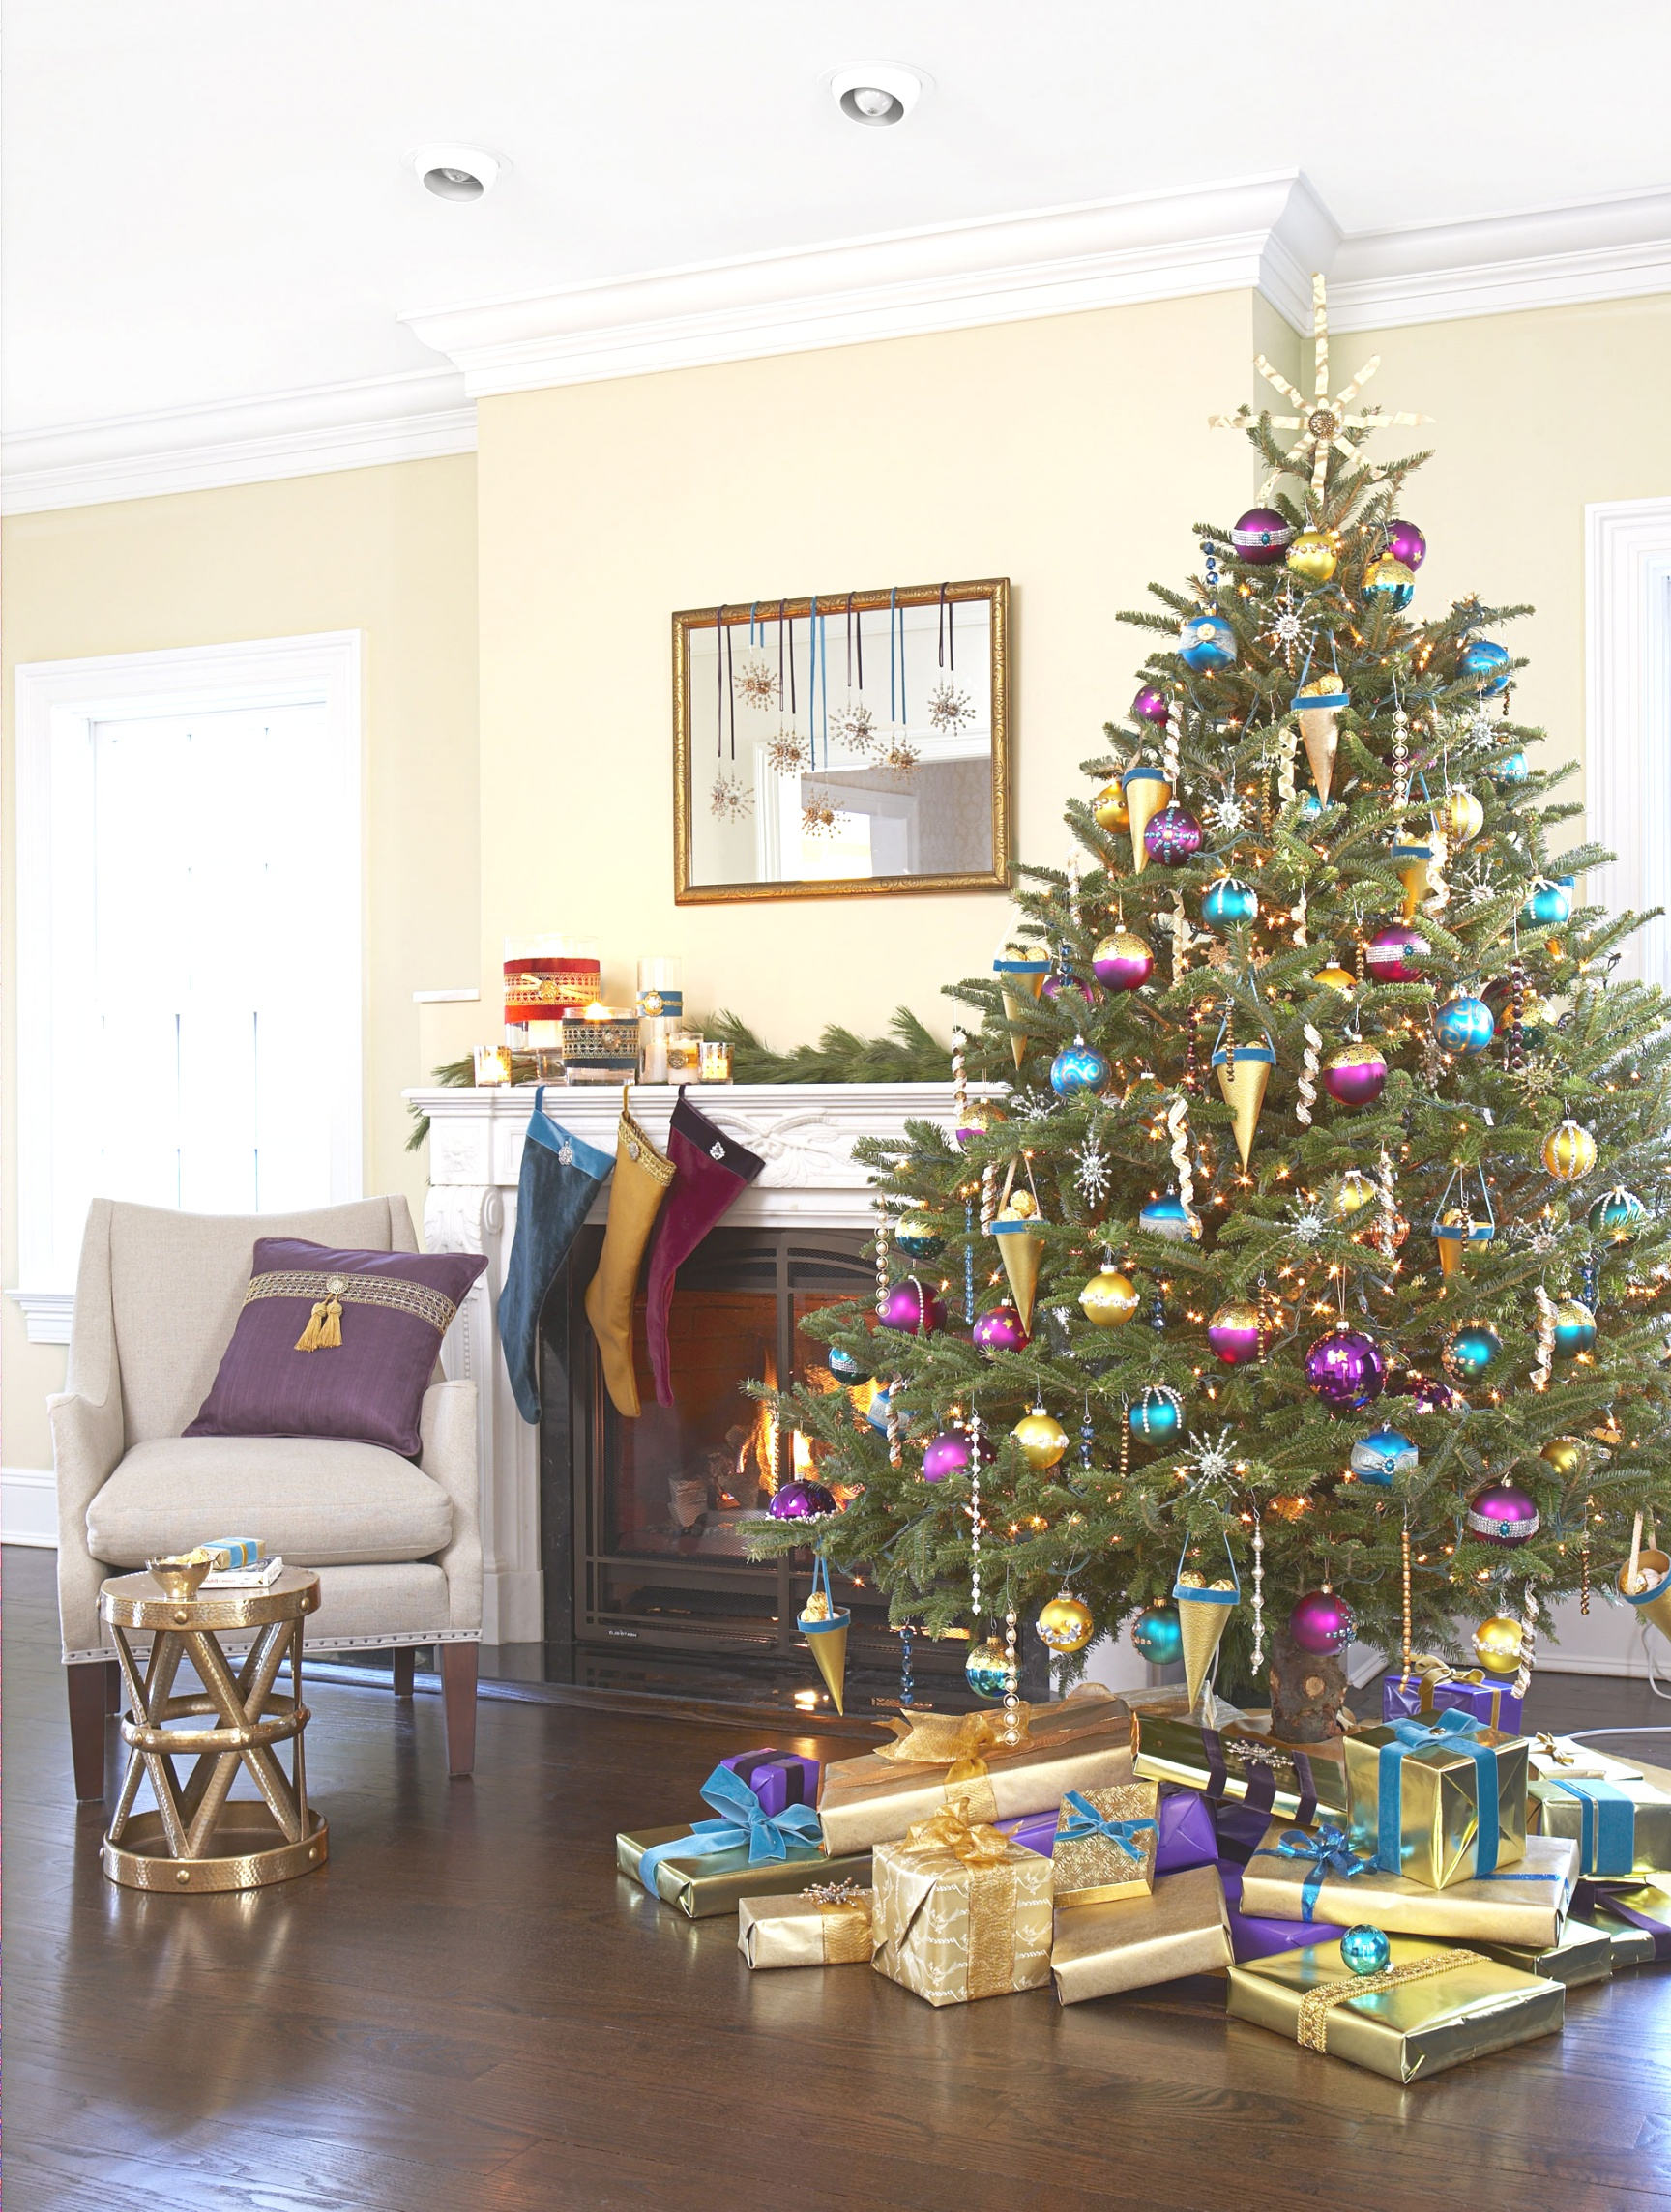 decorating themes | Interior Design : View Unique Christmas Decorating Themes Home ..